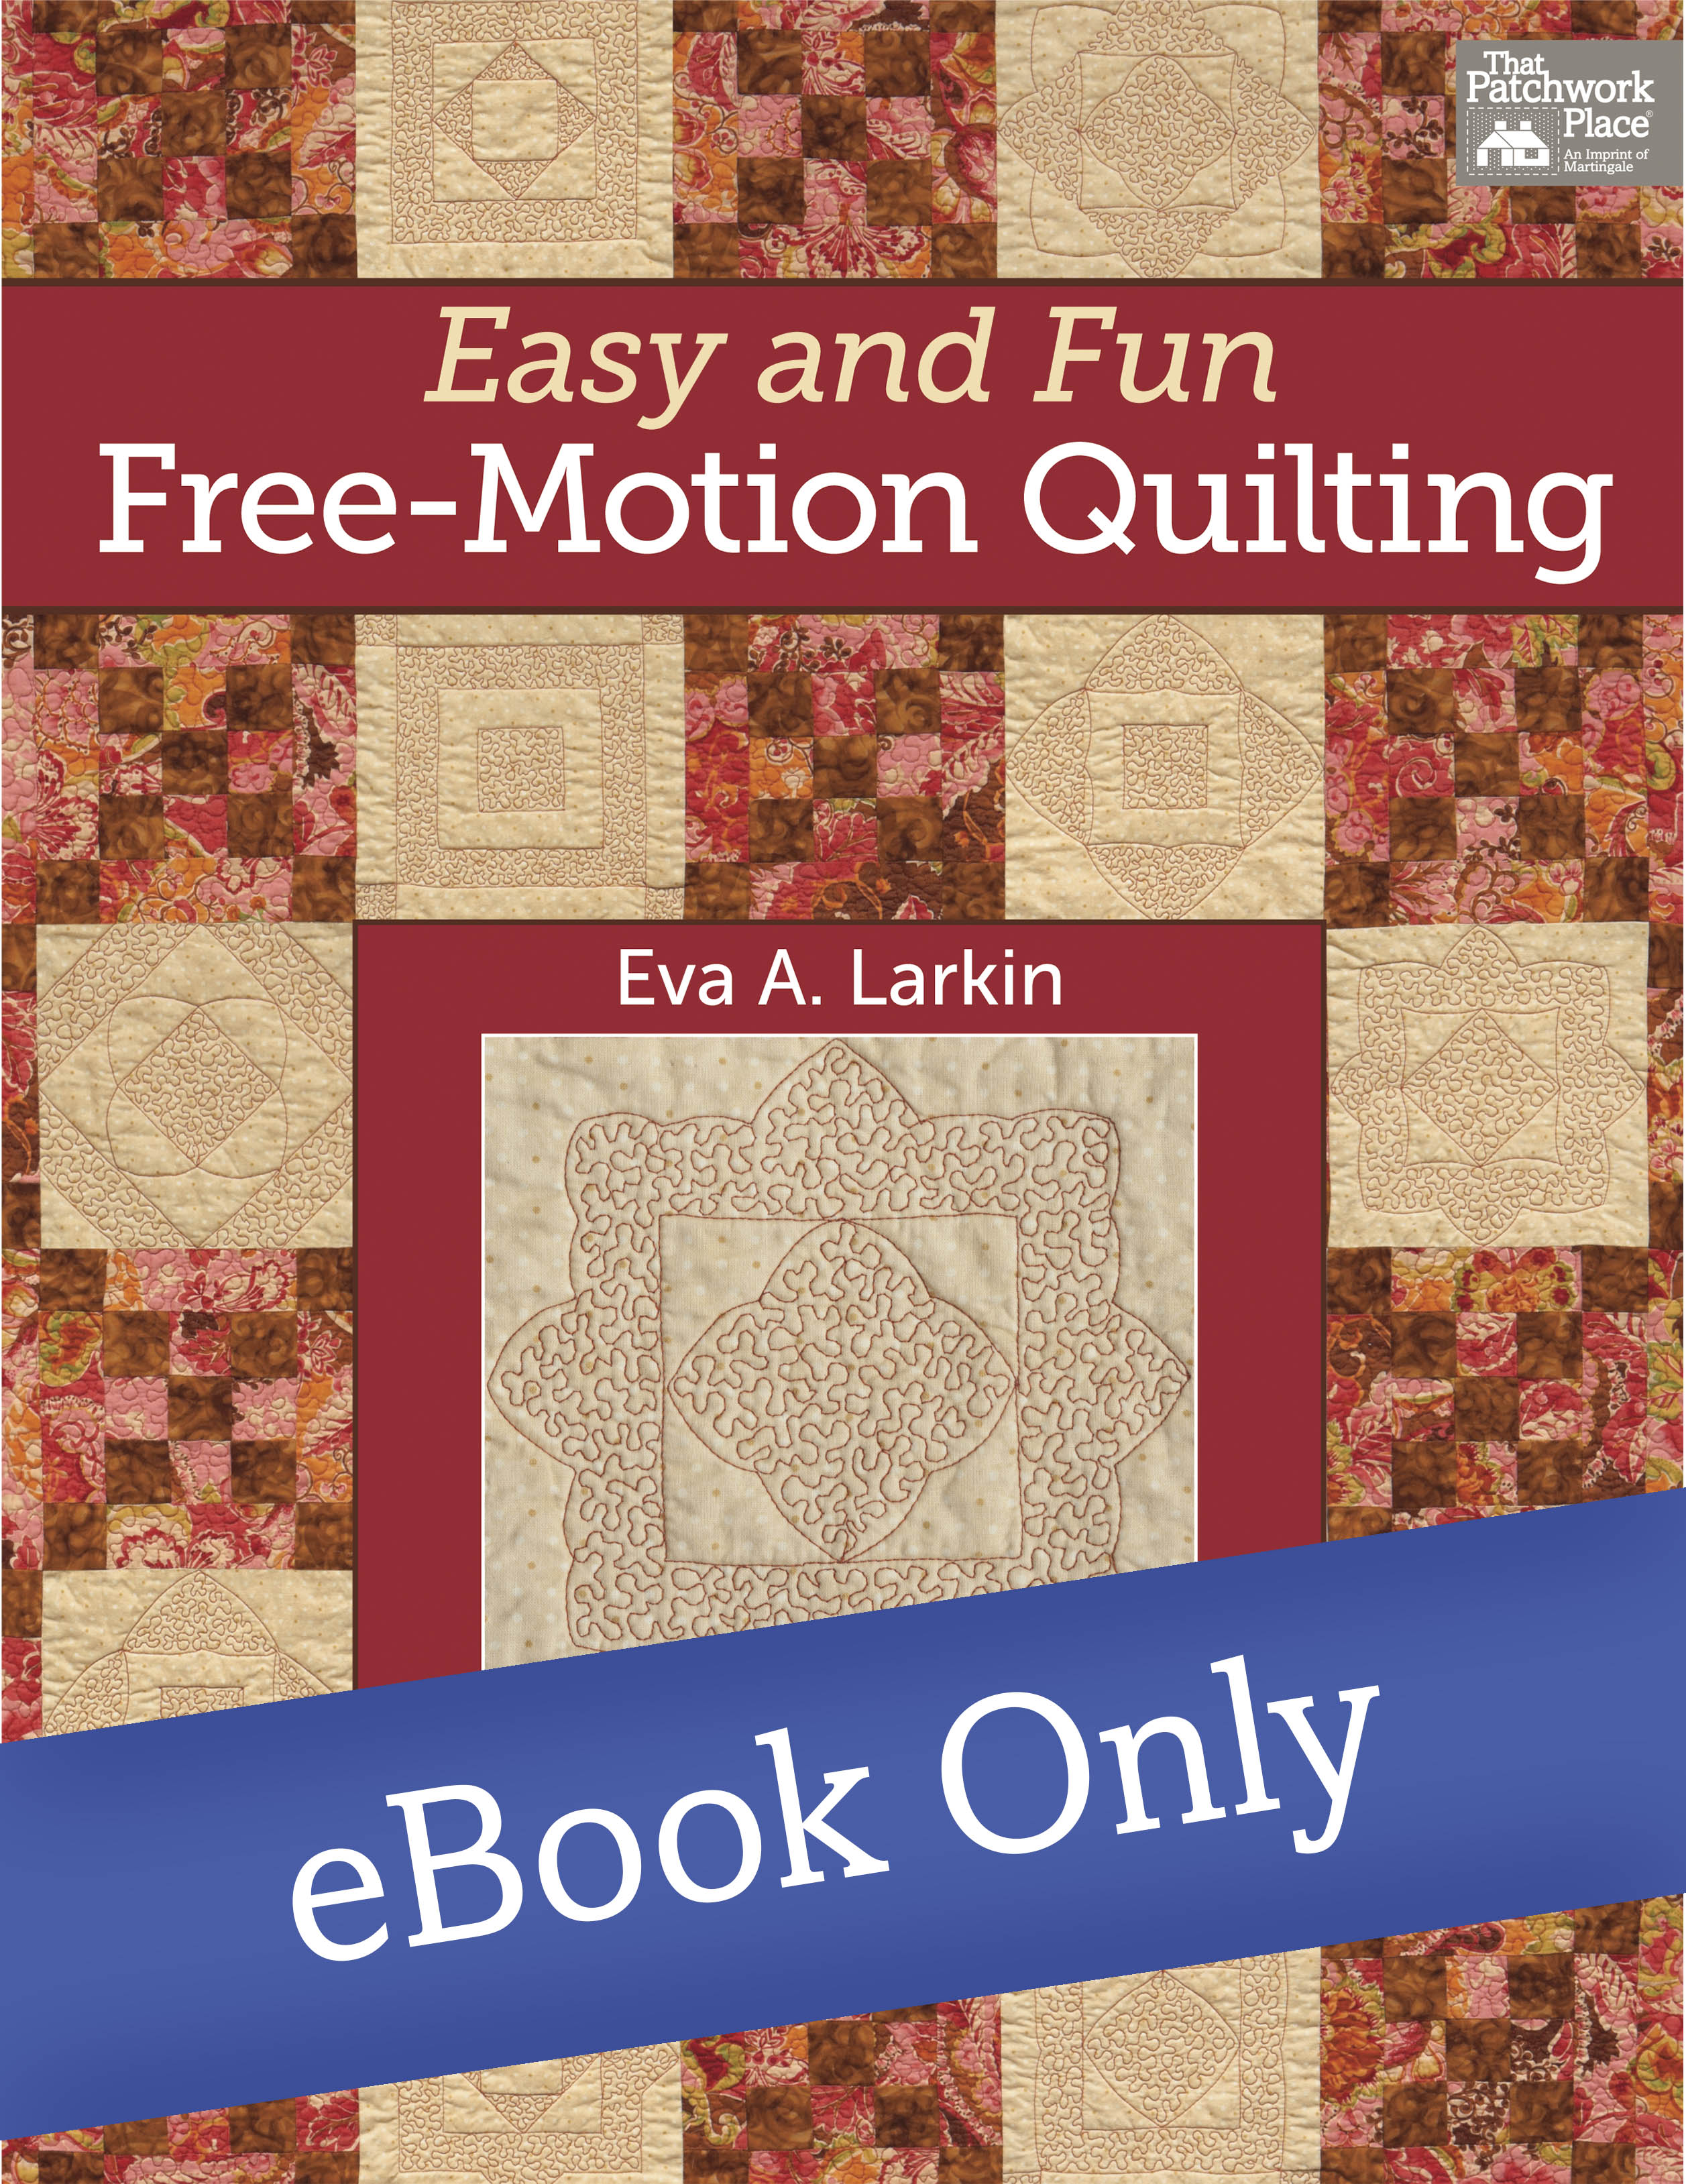 Martingale - Easy and Fun Free-Motion Quilting eBook : quilting for dummies free ebook - Adamdwight.com